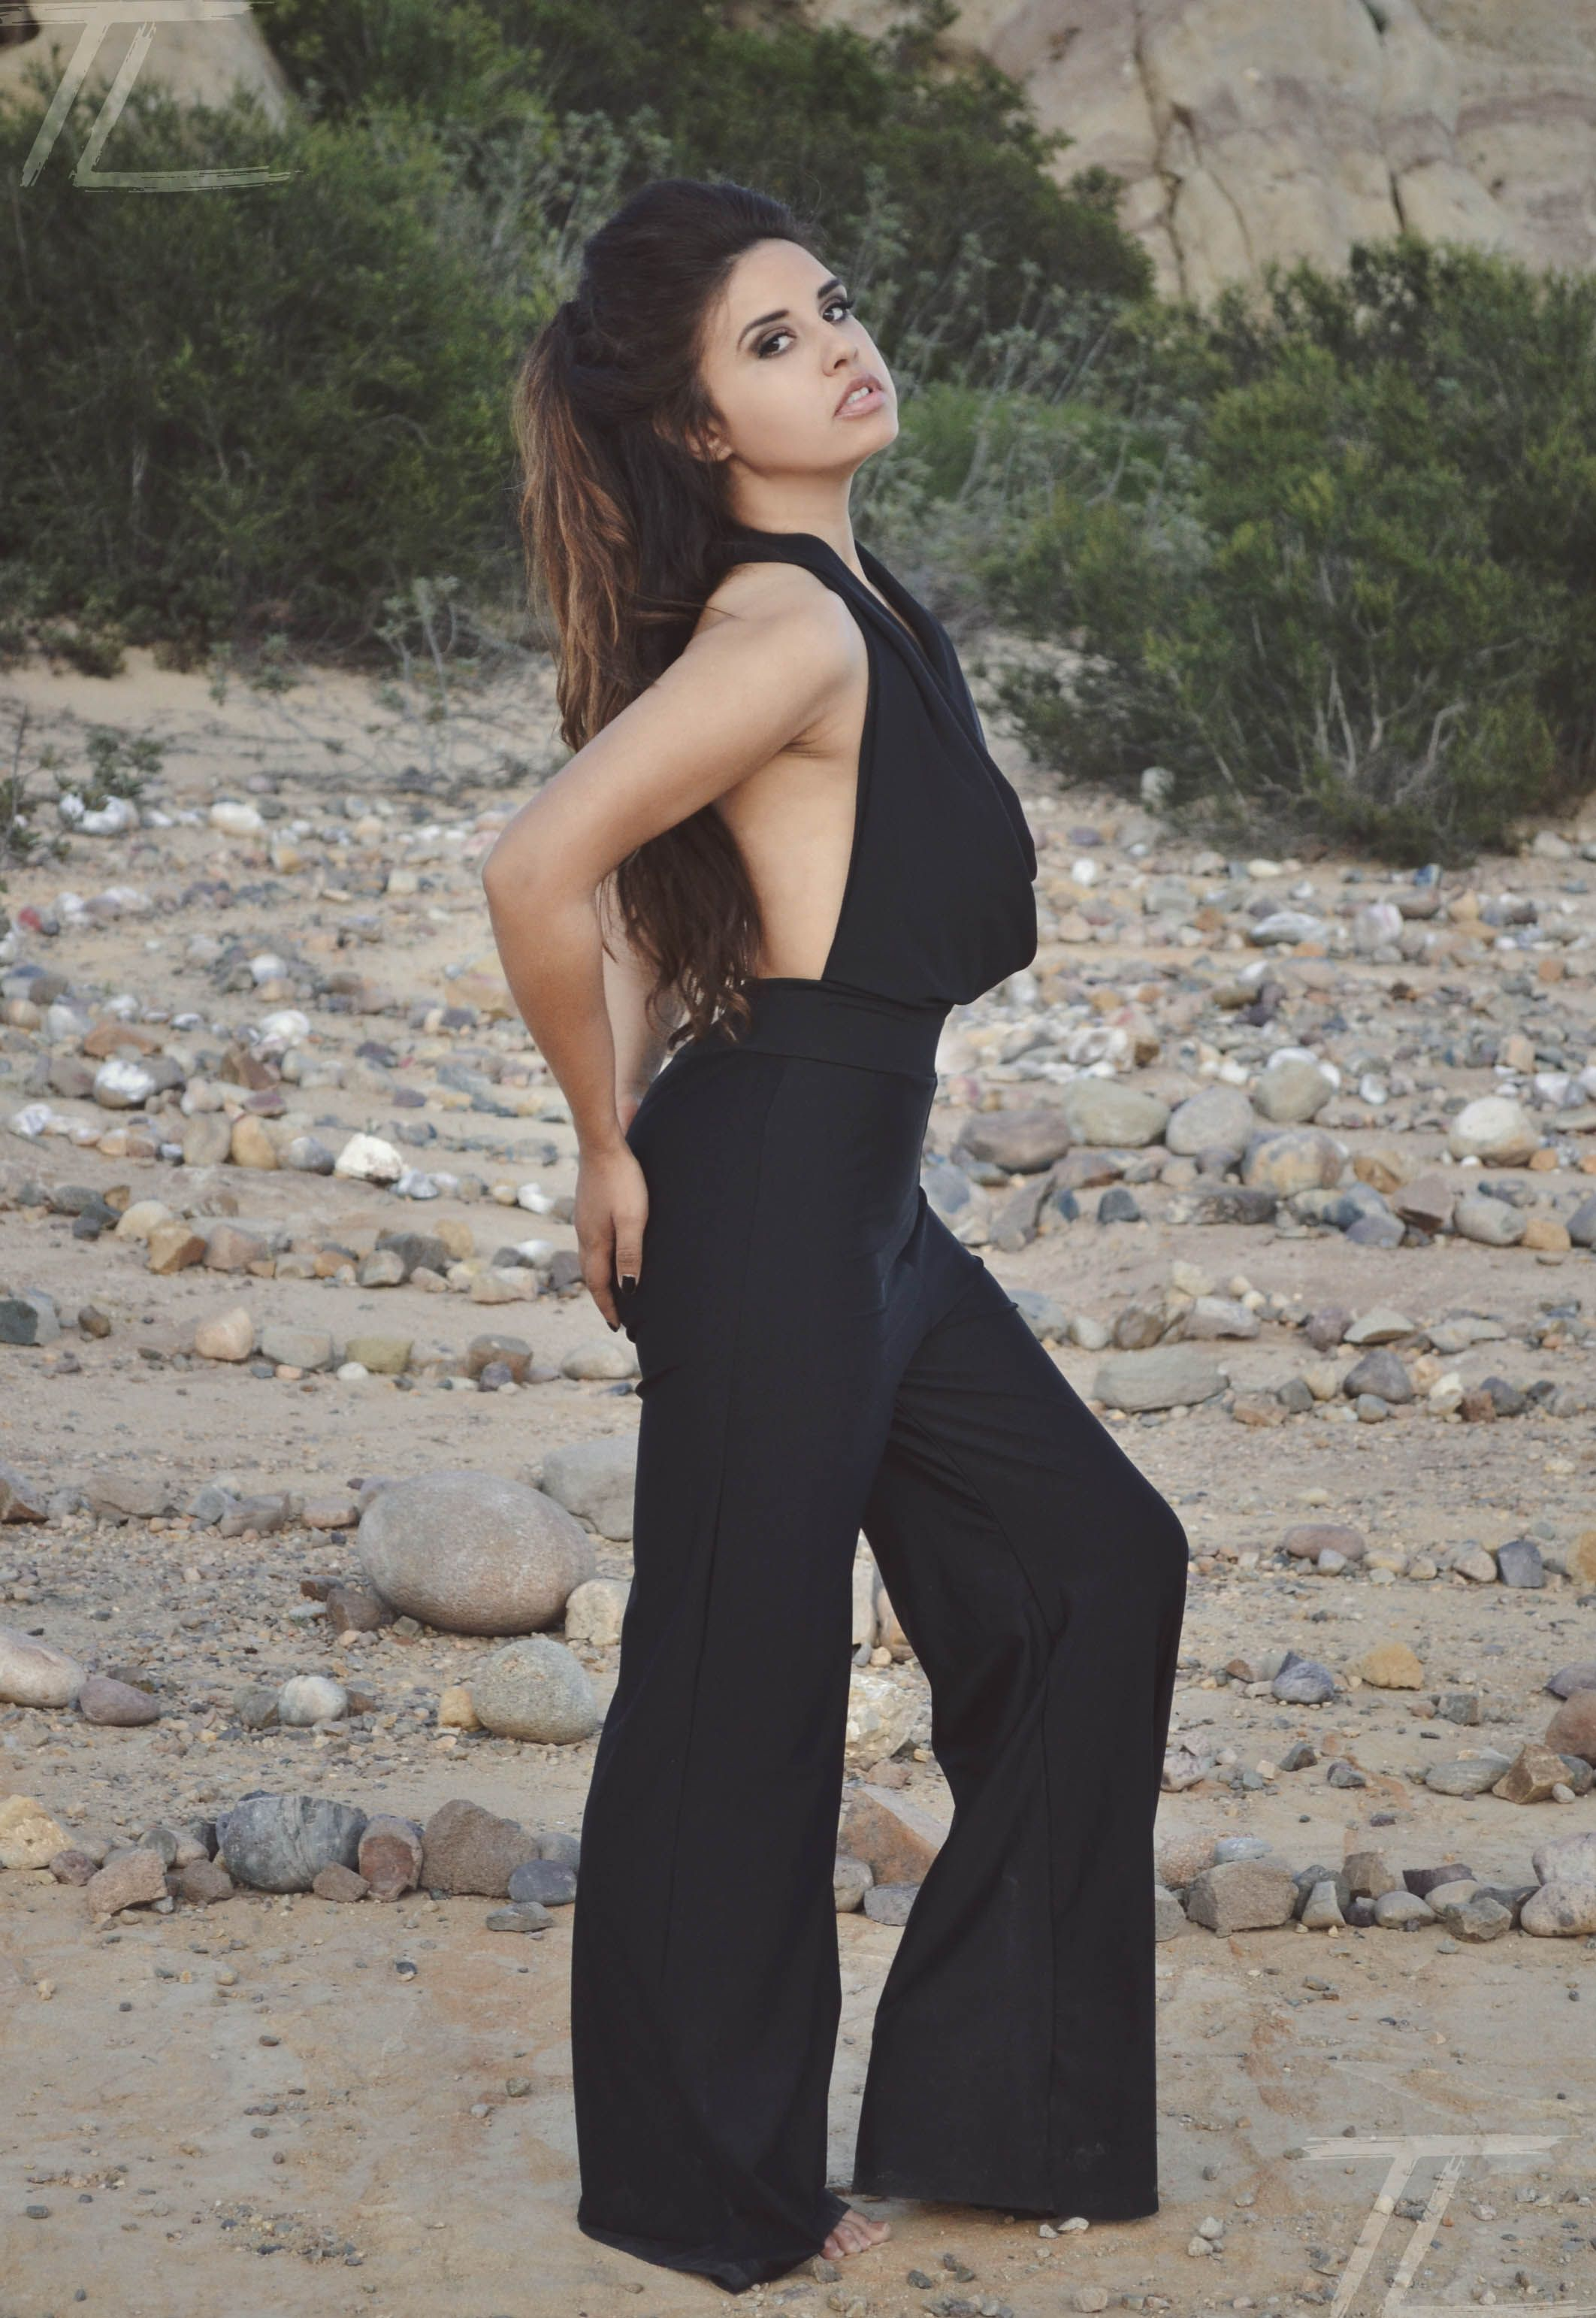 """Dolce Aqua """"Lunah"""" cowl neck backless jumpsuit in black.  The perfect beach cover up that goes from day to night!"""